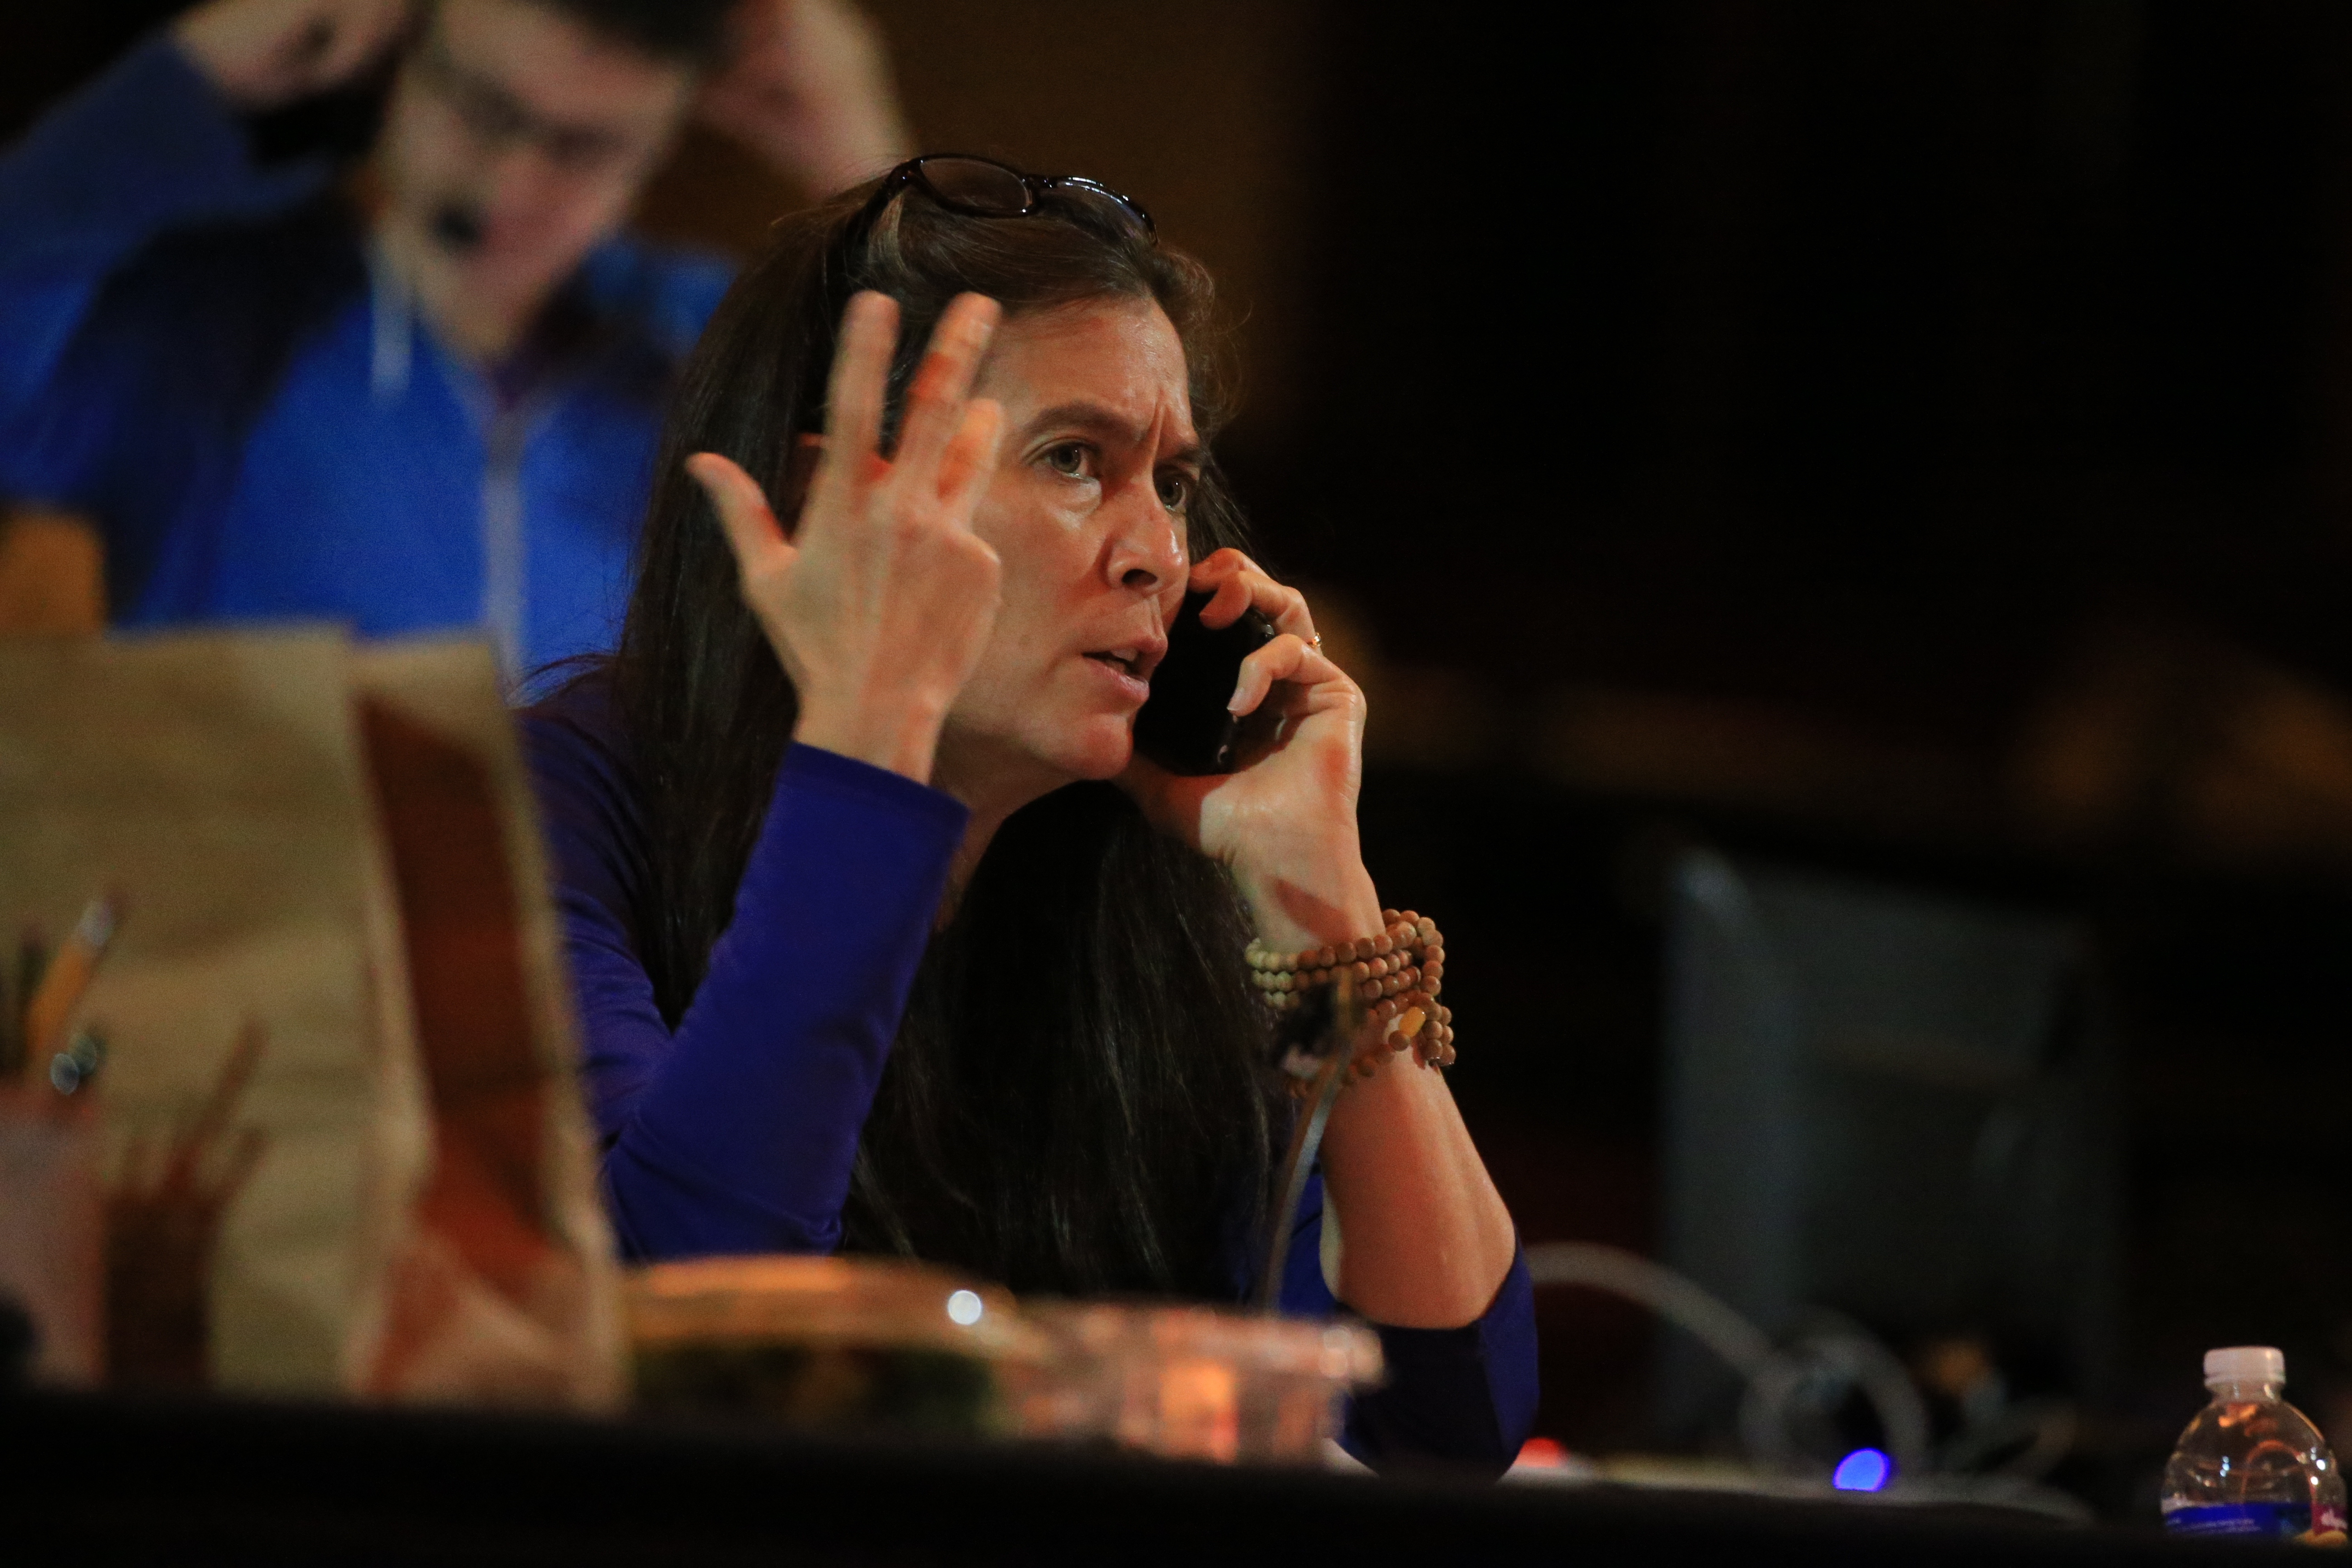 """Finding Neverland"" director Diane Paulus at work in Shea's Performing Arts Center in Buffalo, N.Y. on Thursday Sept. 29, 2016. (John Hickey/Buffalo News)"